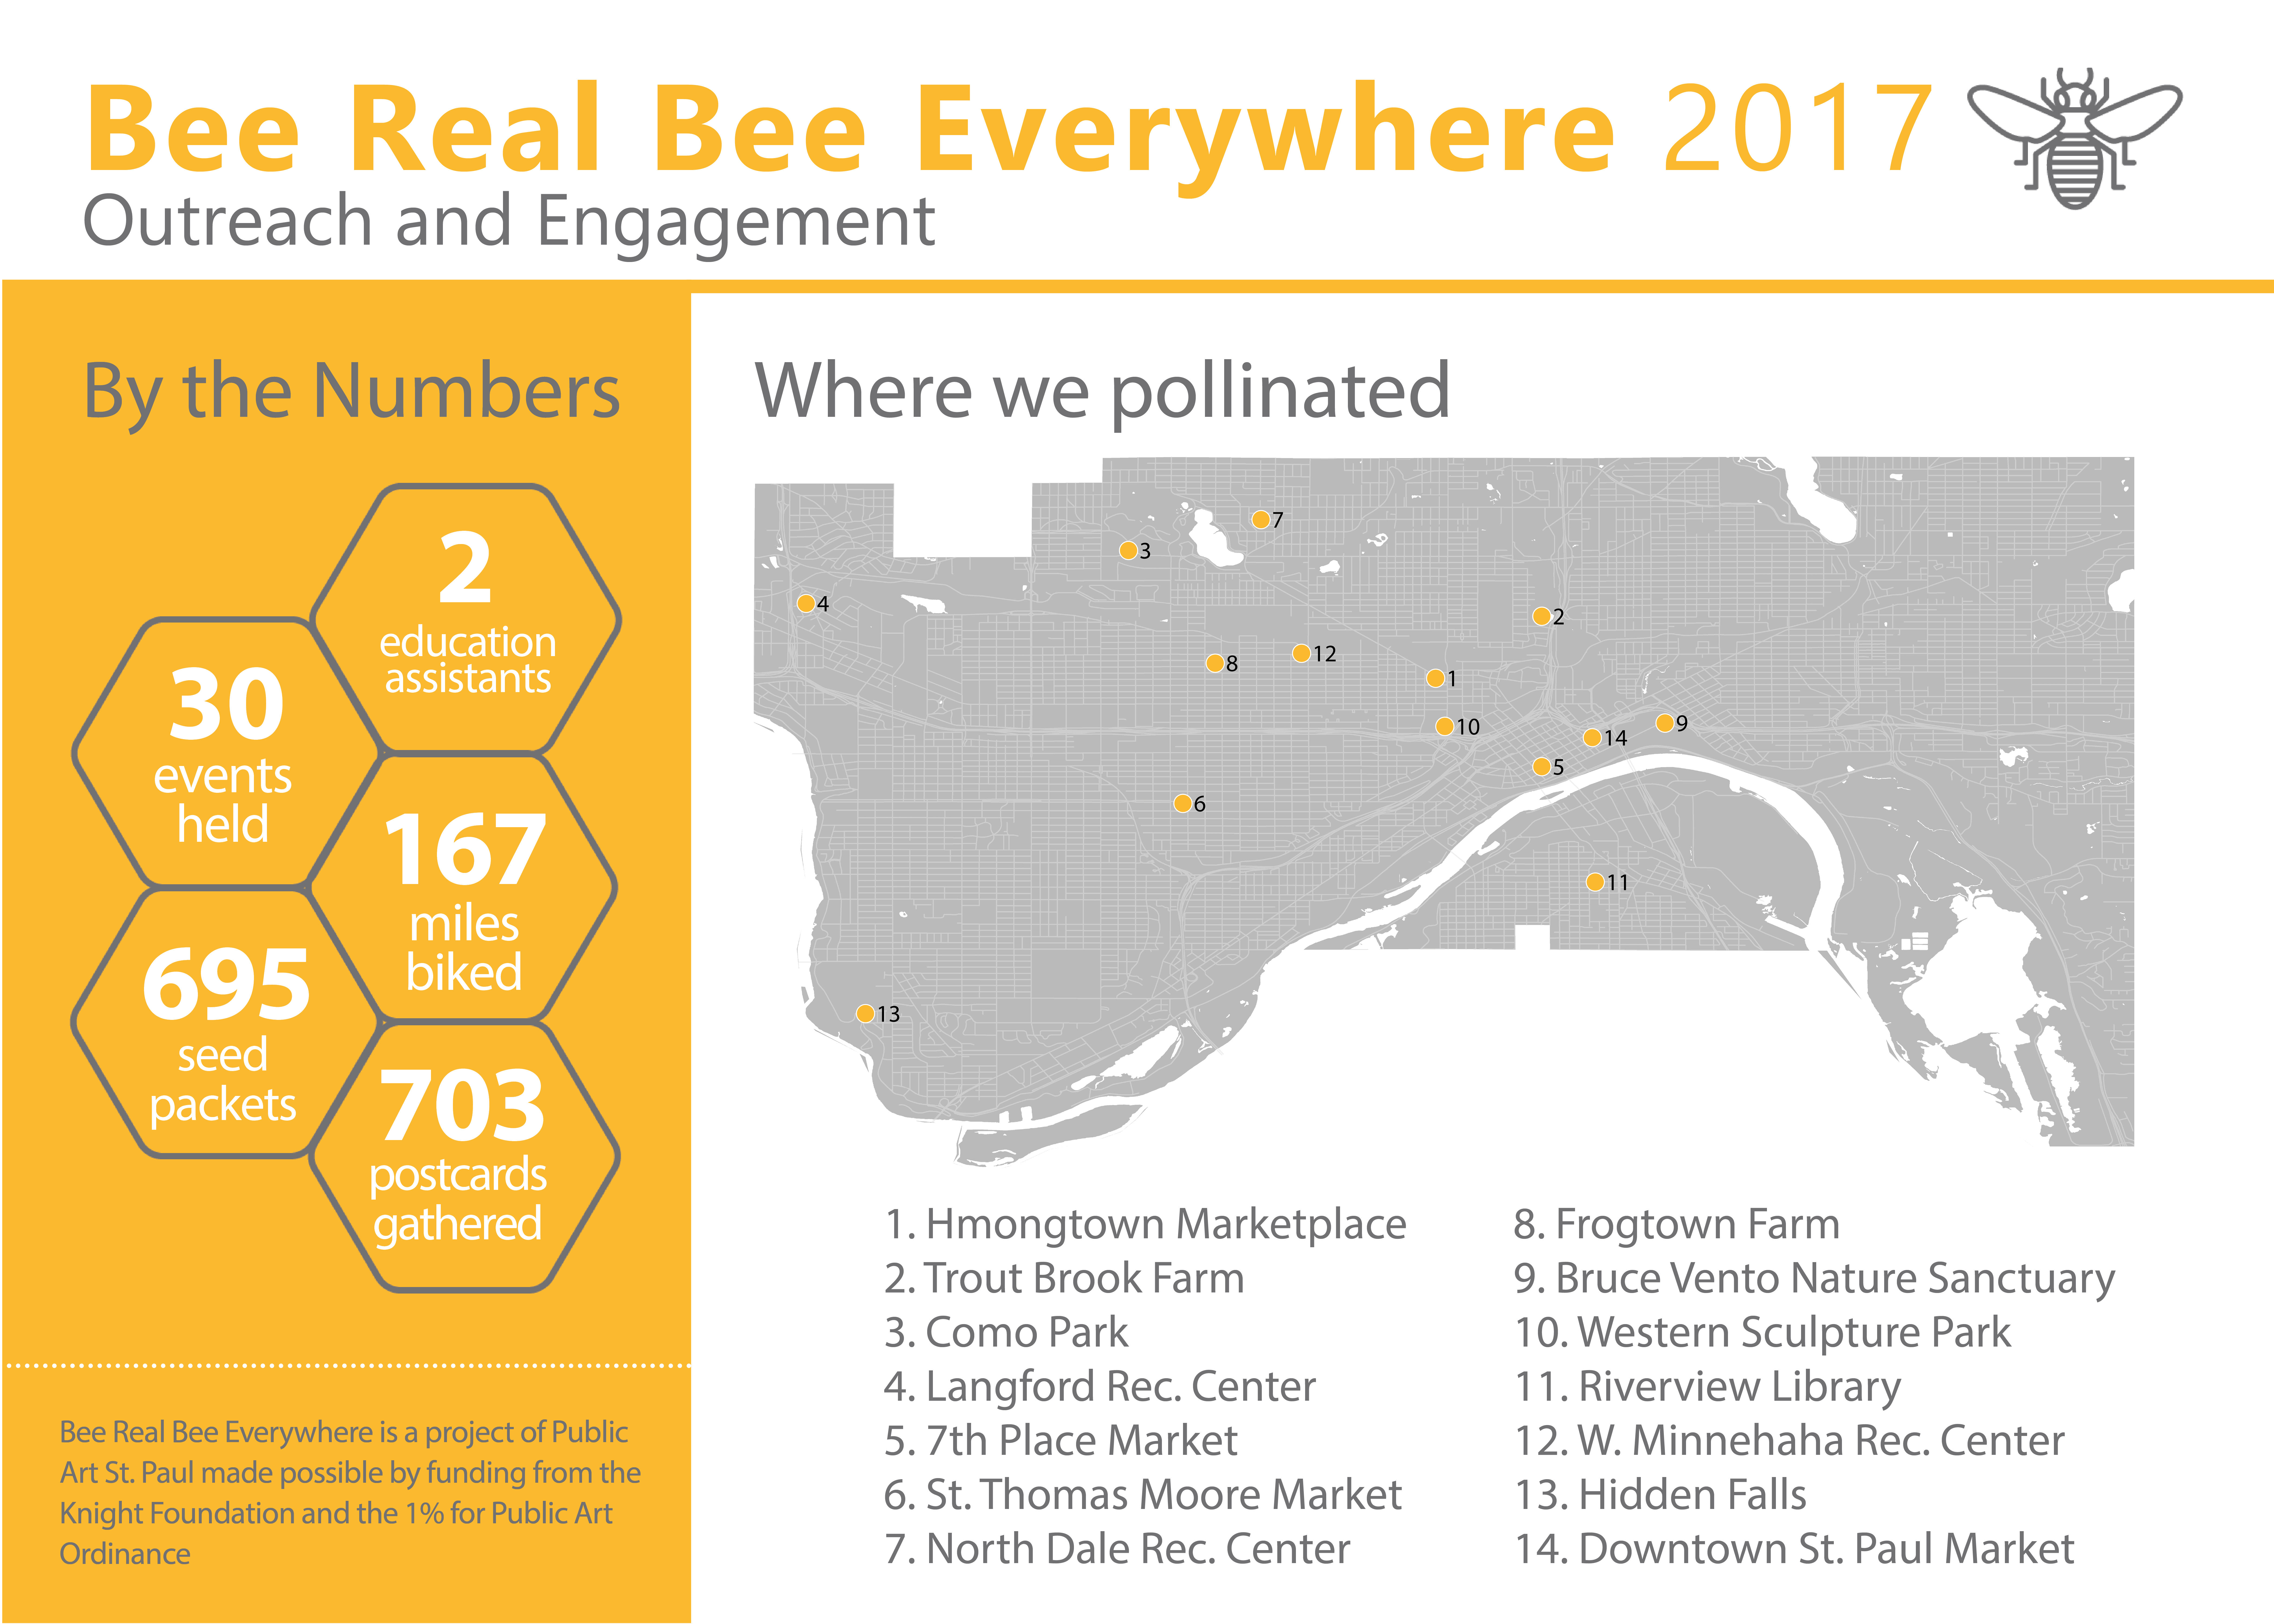 Bee Real project 2017 statistics